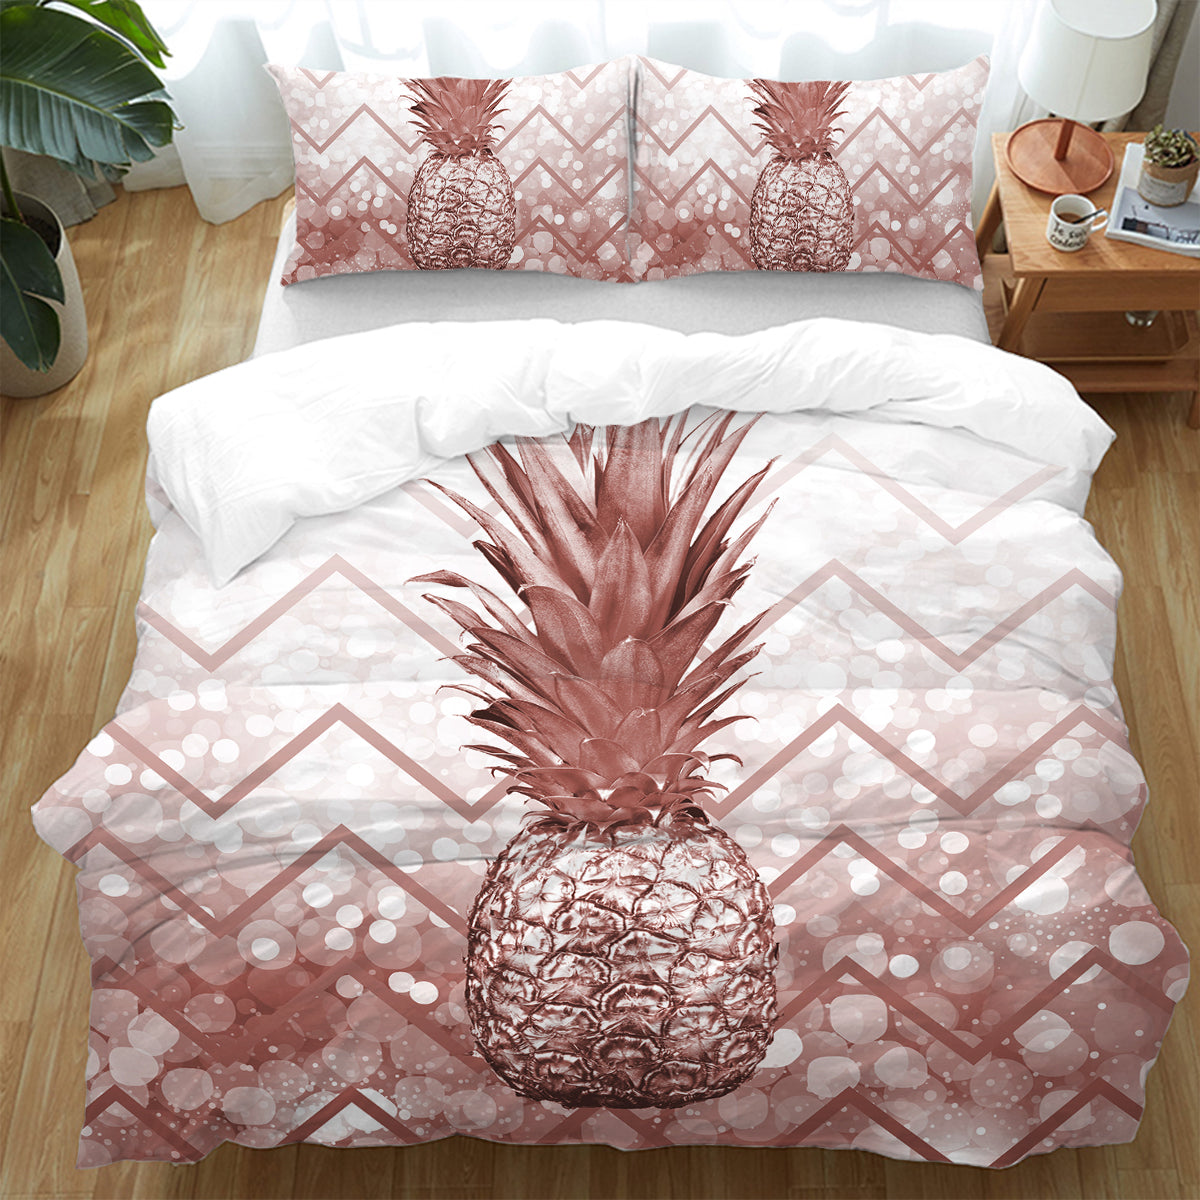 The Golden Pineapple Bedding Set